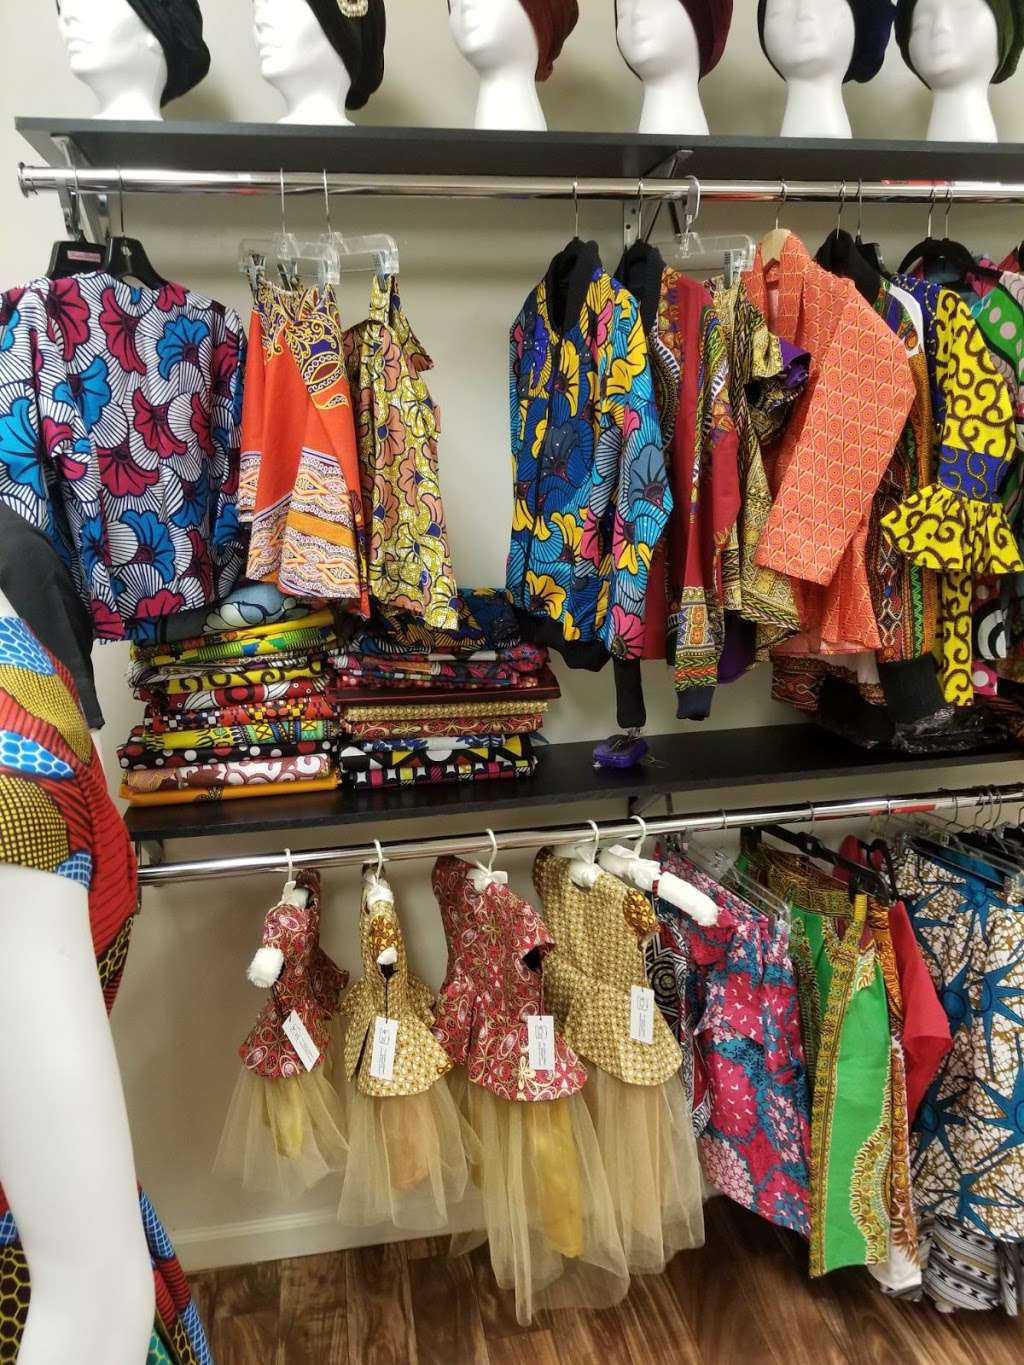 MOOR AFRICAN EUROPEAN CLOTHING & ALTERATION - clothing store  | Photo 4 of 10 | Address: 602 W Sugar Creek Rd, Charlotte, NC 28213, USA | Phone: (980) 430-0191